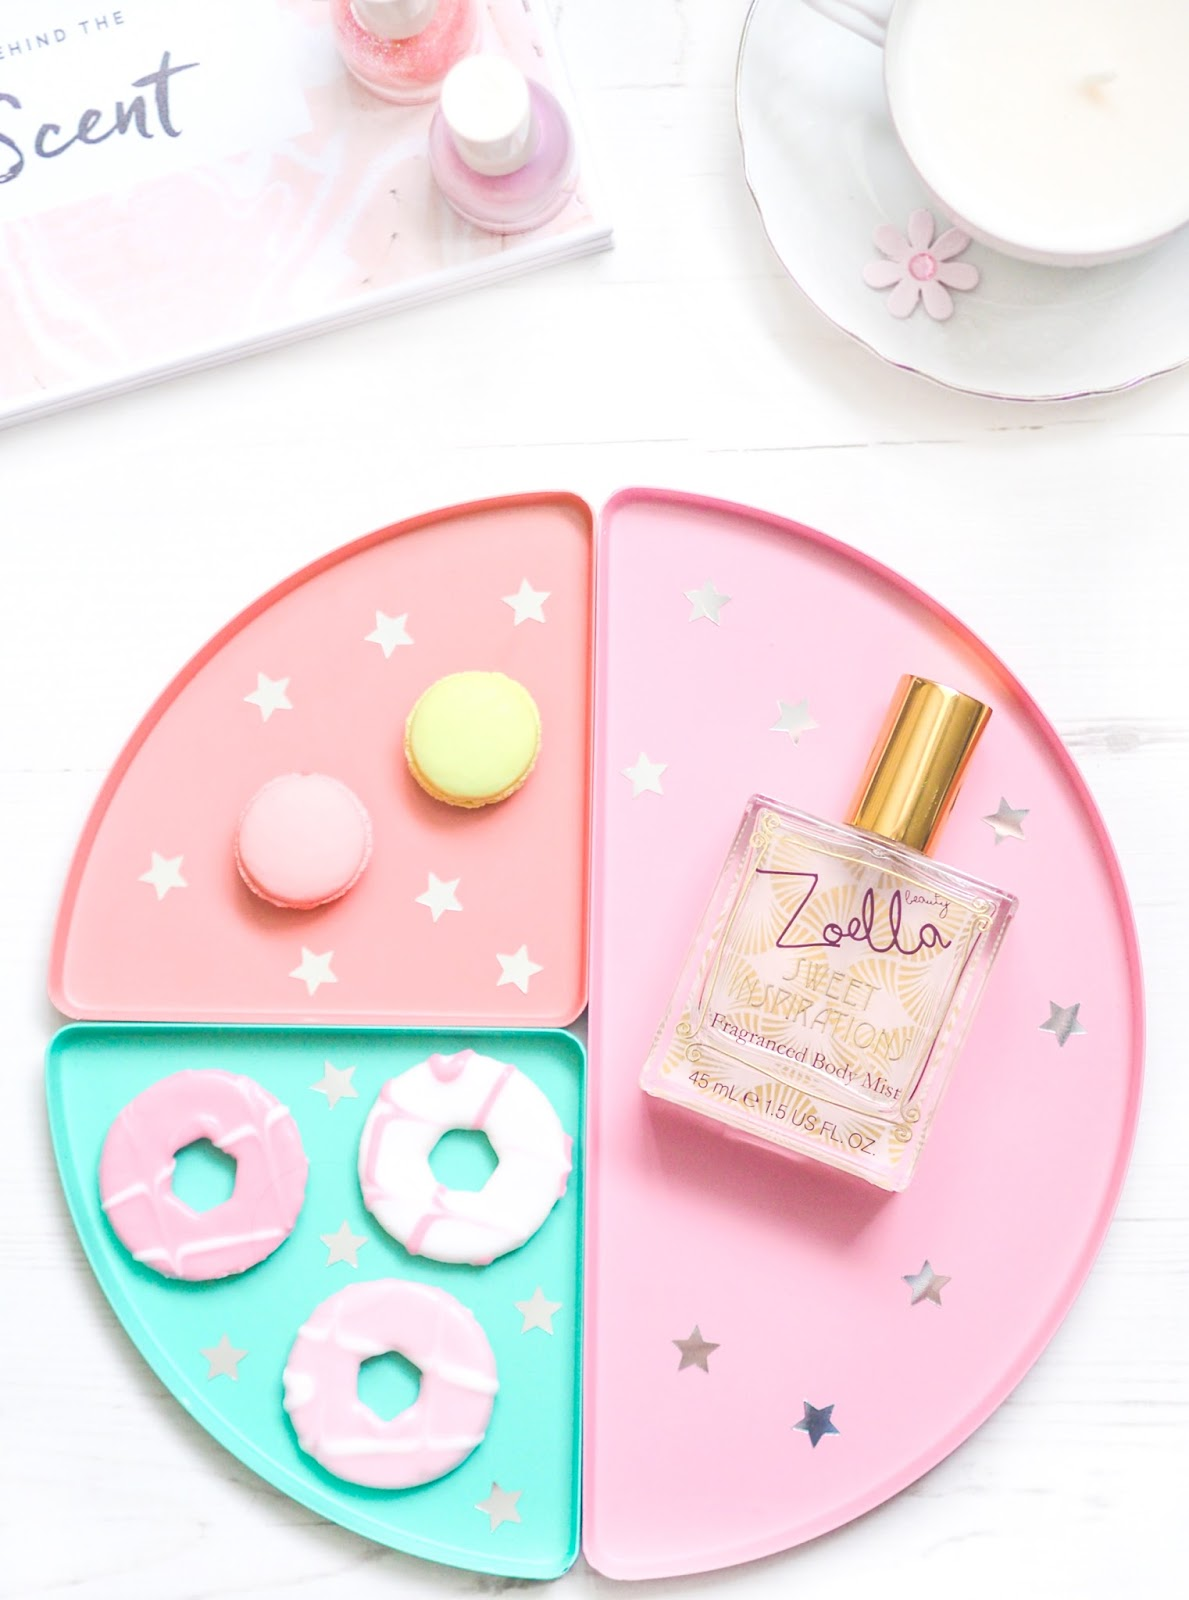 Zoella Beauty Sweet Inspirations Body Mist